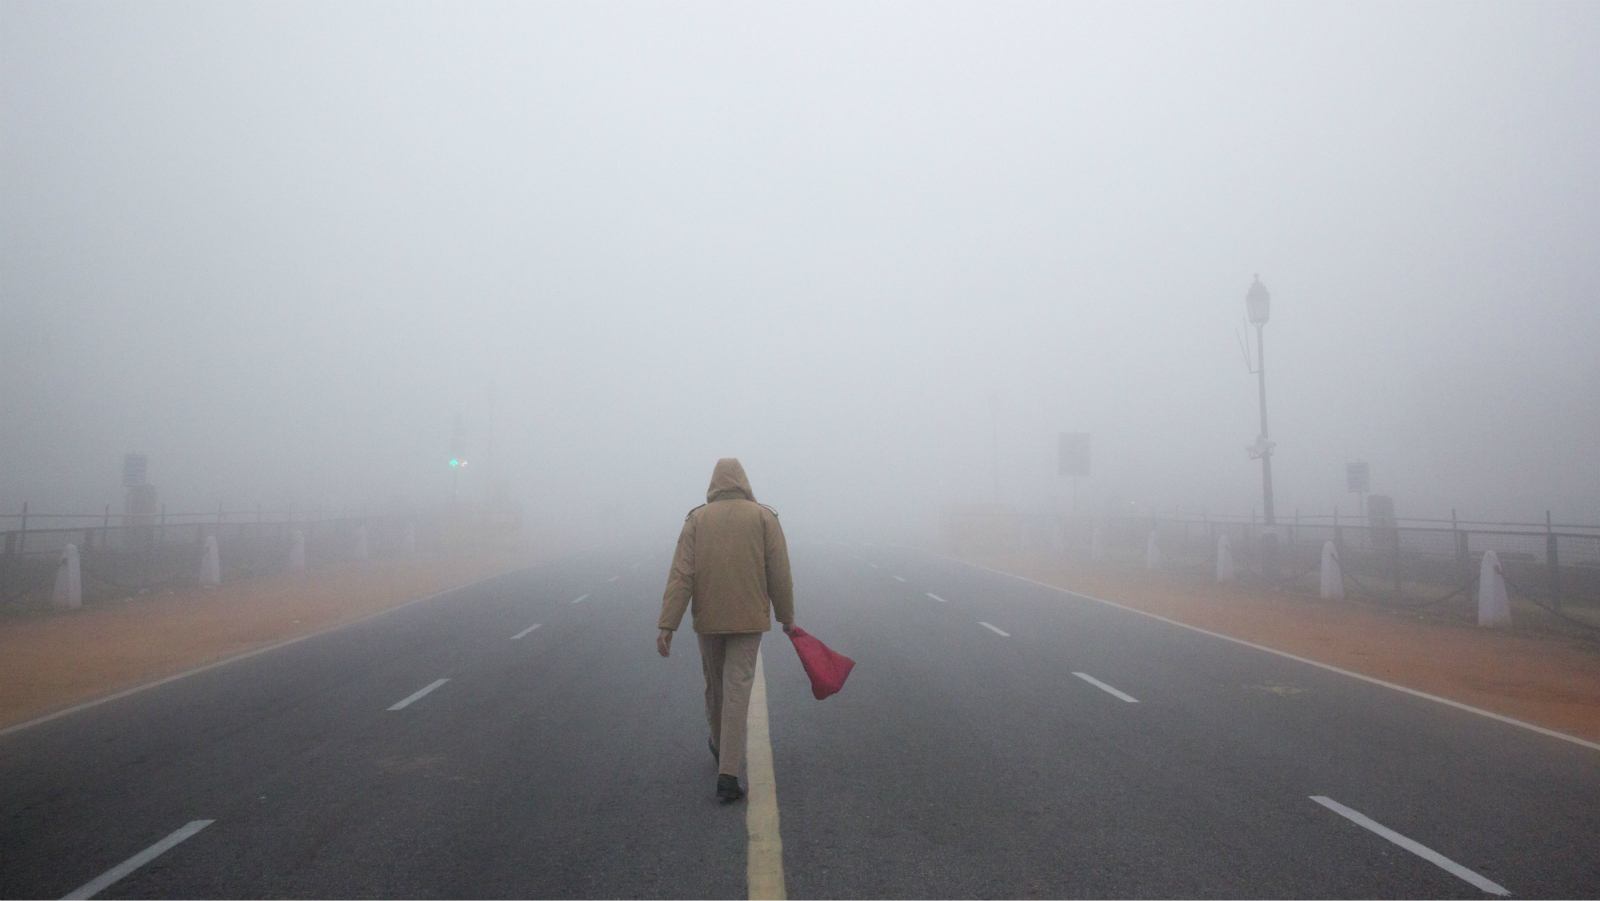 A Delhi police officer with red flag walks ahead of his marching contingent during the upcoming Republic Day parade practice amidst morning fog in New Delhi, India, Monday, Dec. 29, 2014. U.S. President Barack Obama will travel to India to participate in Indian Republic Day celebration as chief guest, which will be celebrated on Jan. 26, 2015. (AP Photo /Manish Swarup)